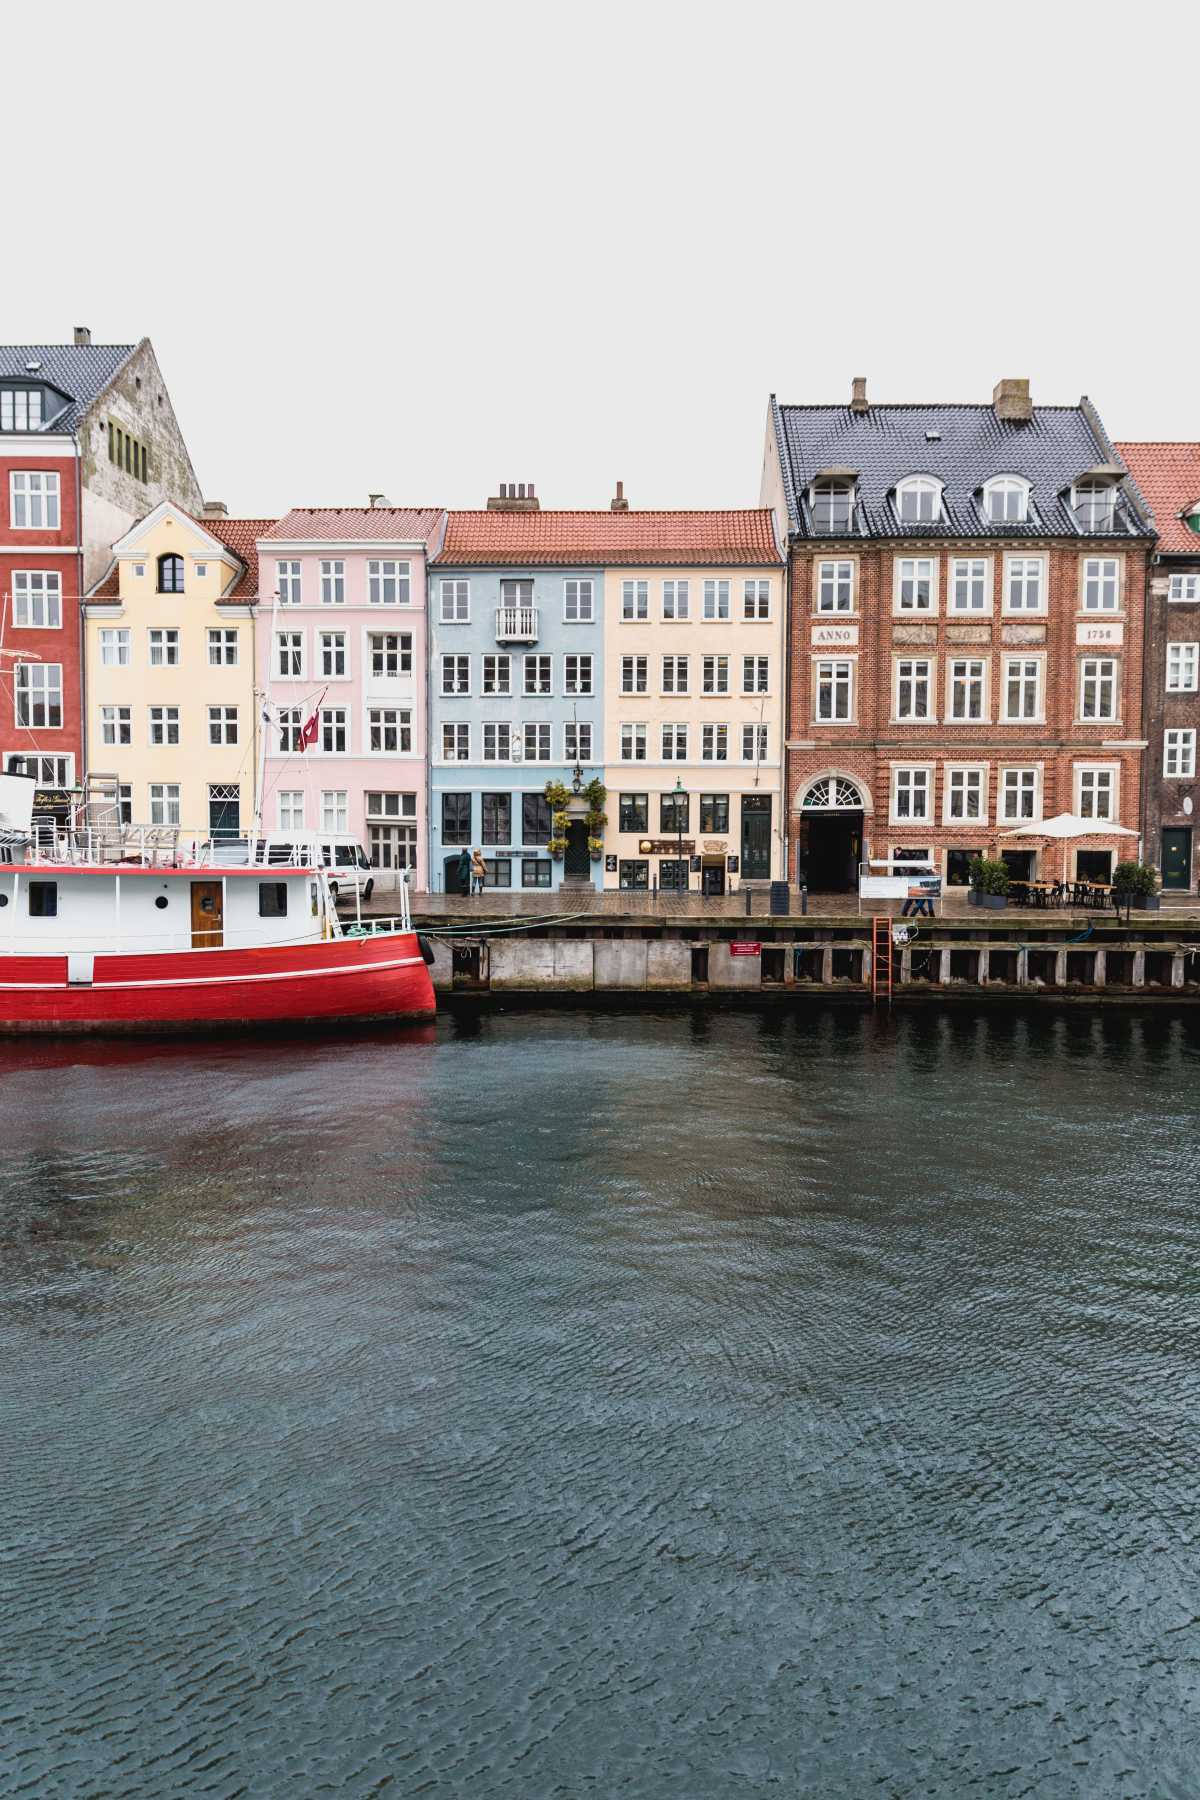 Old, colorful buildings by the water